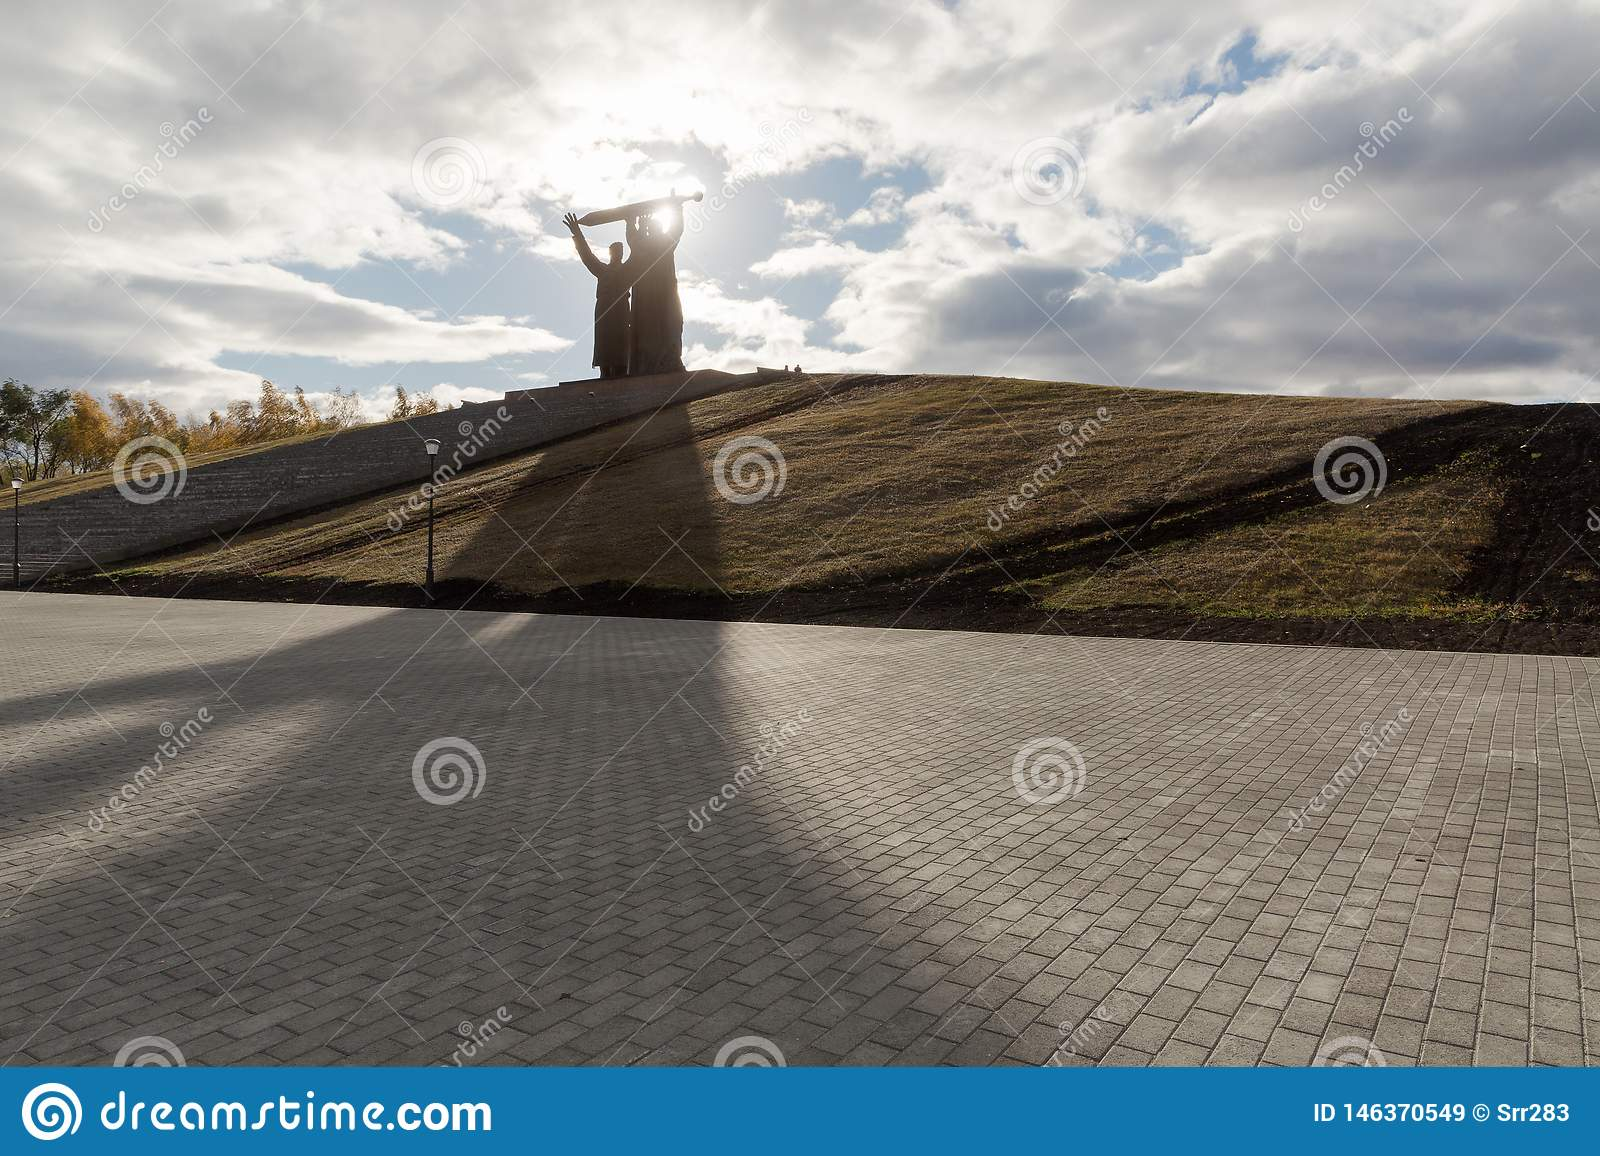 MAGNITOGORSK, RUSSIA - OCTOBER, 2018: Monument Rear-front a famous sculpture and Eternal flame in granite flower